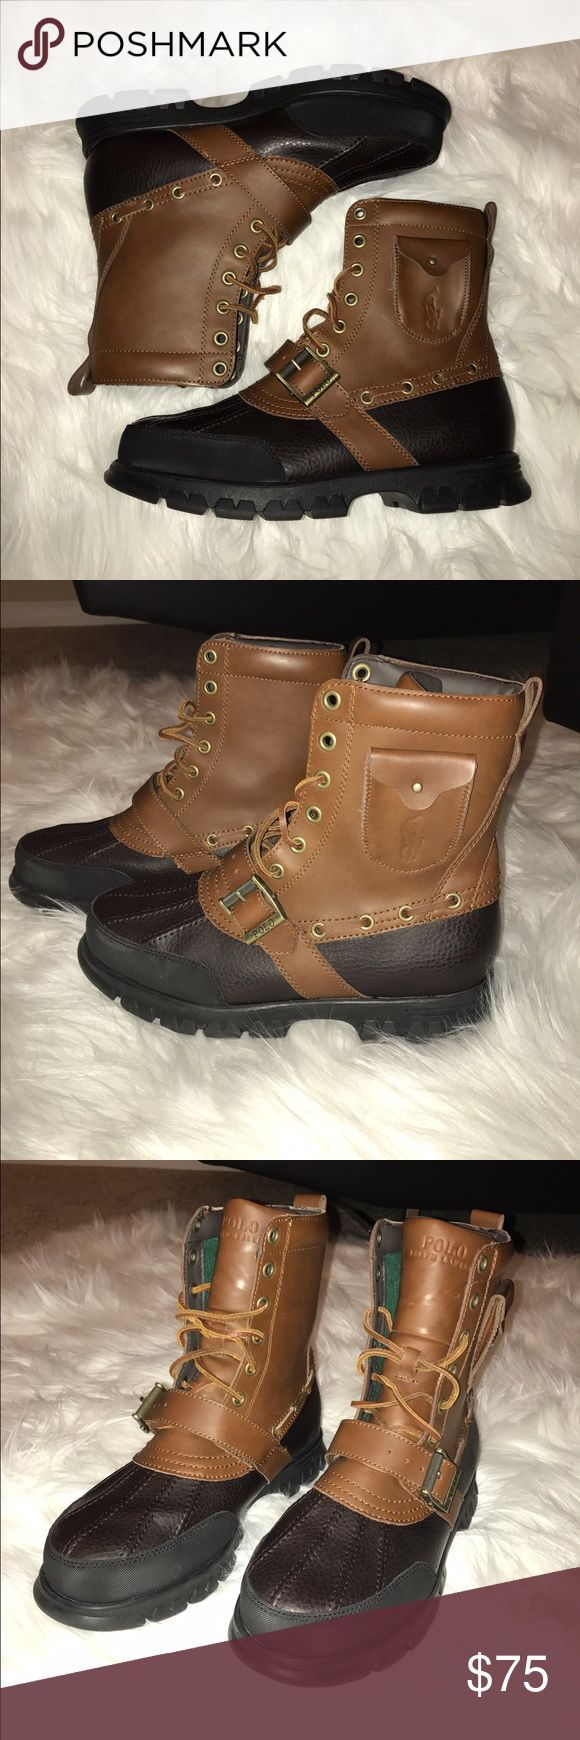 Polo Ralph Lauren Boots Hamlin Leather (9D High tan/ Briarwood brown) Wore once no box Polo by Ralph Lauren Shoes Boots